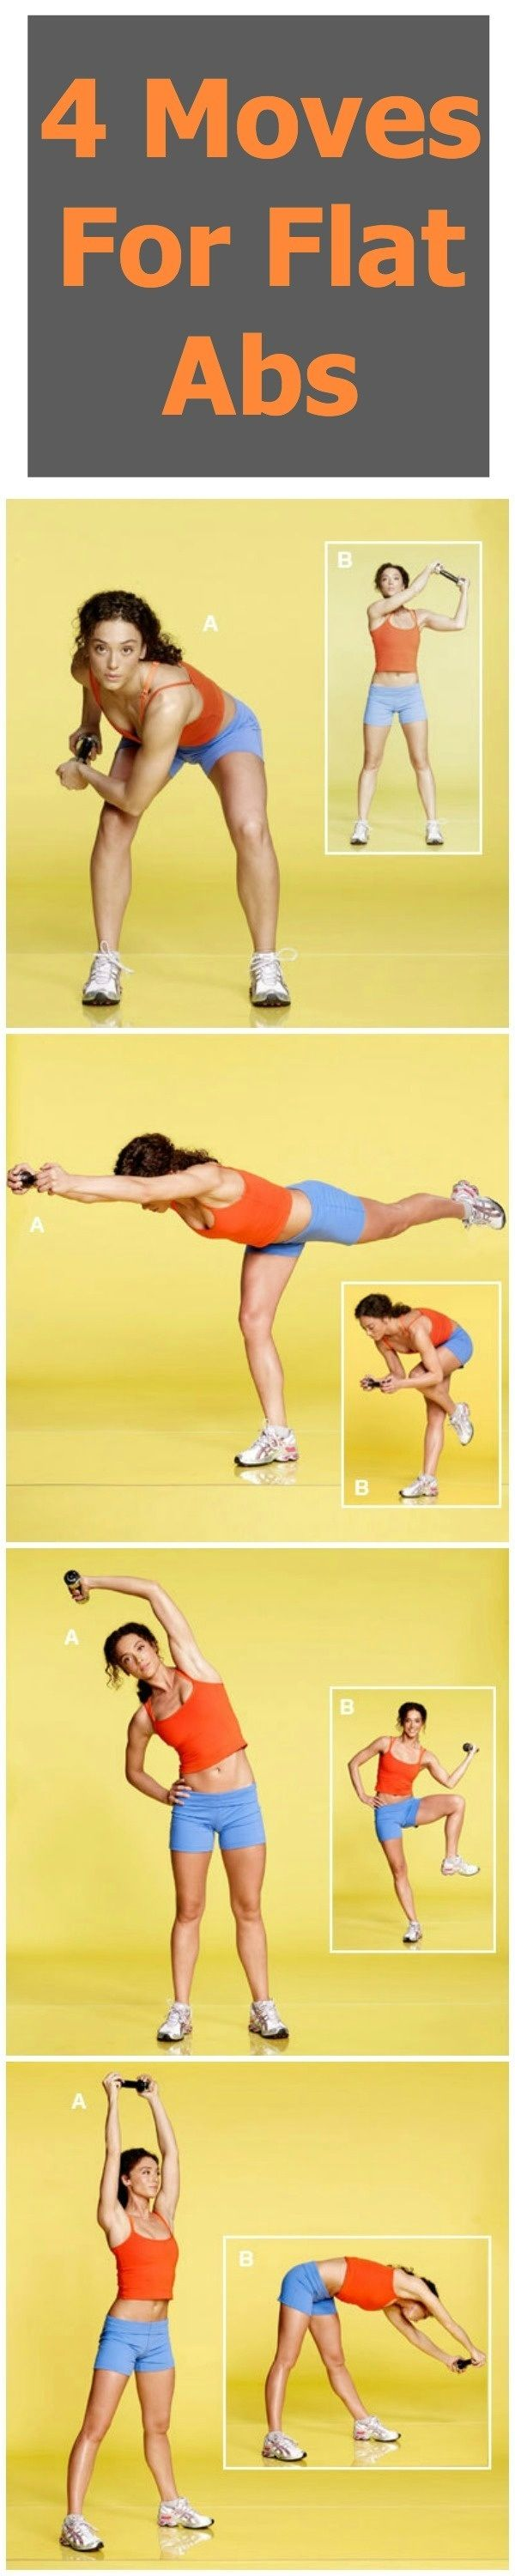 4 standing moves for flat abs